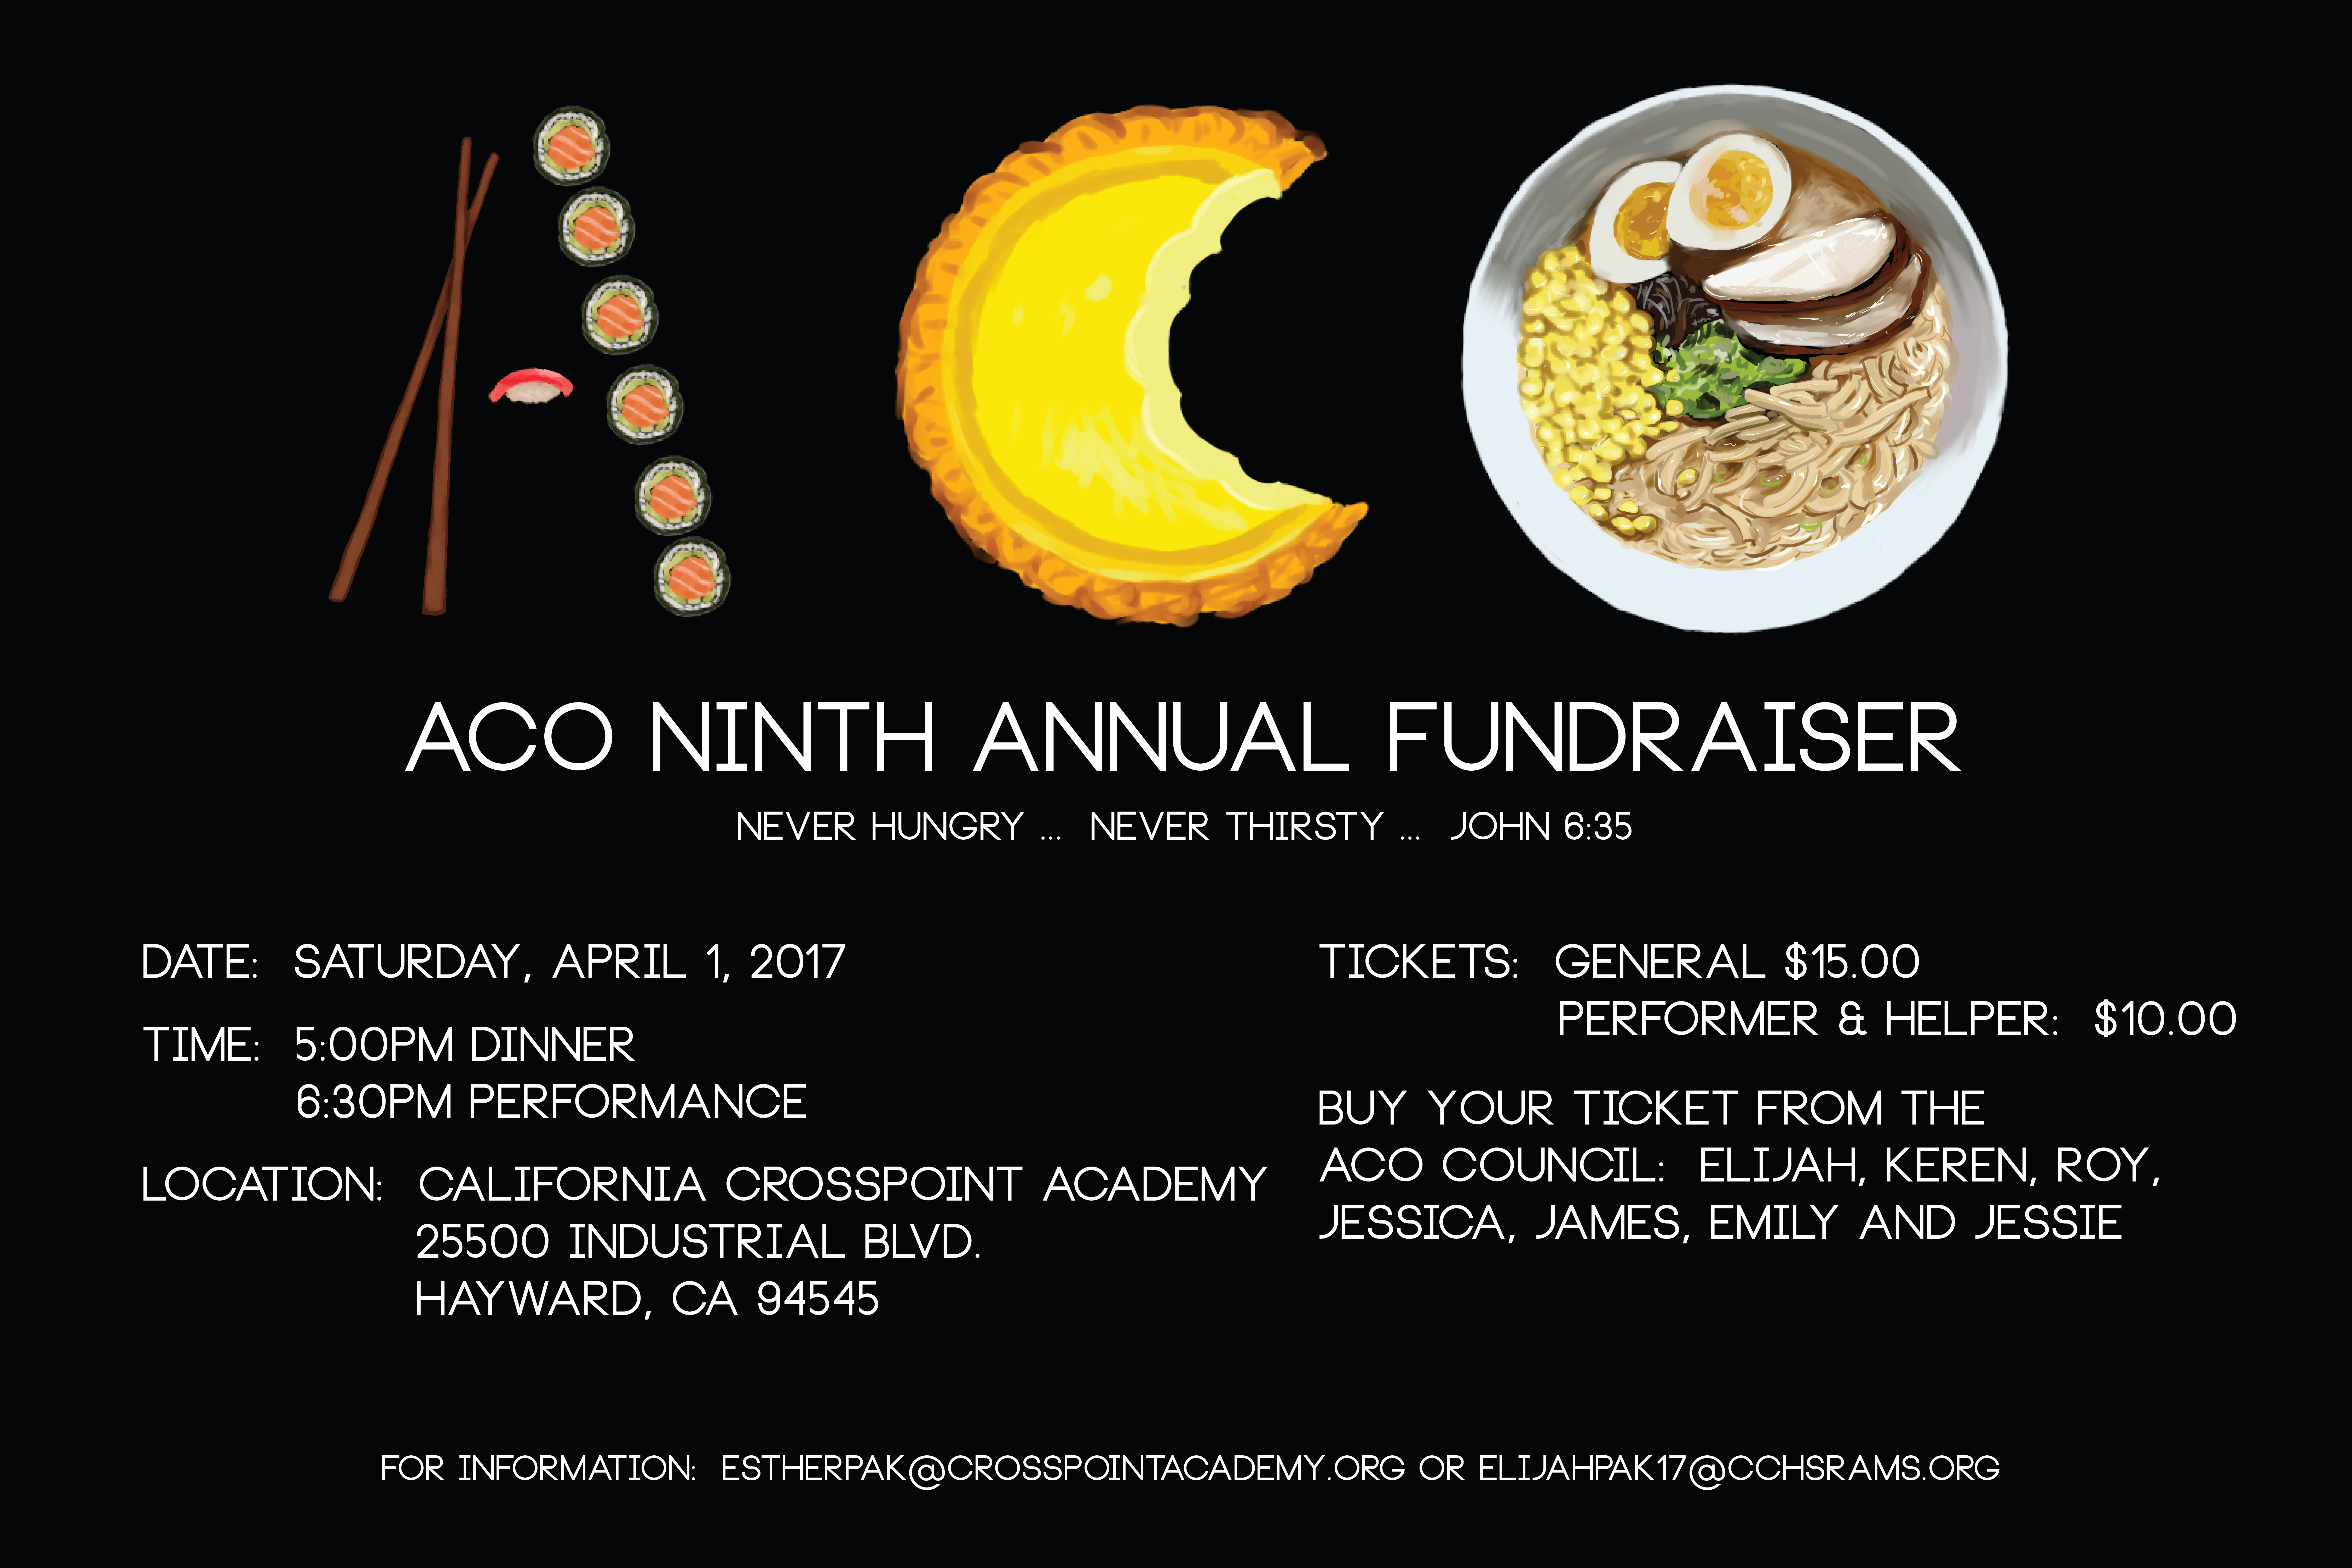 Asian Cultural Organizations's Annual Fundraiser!